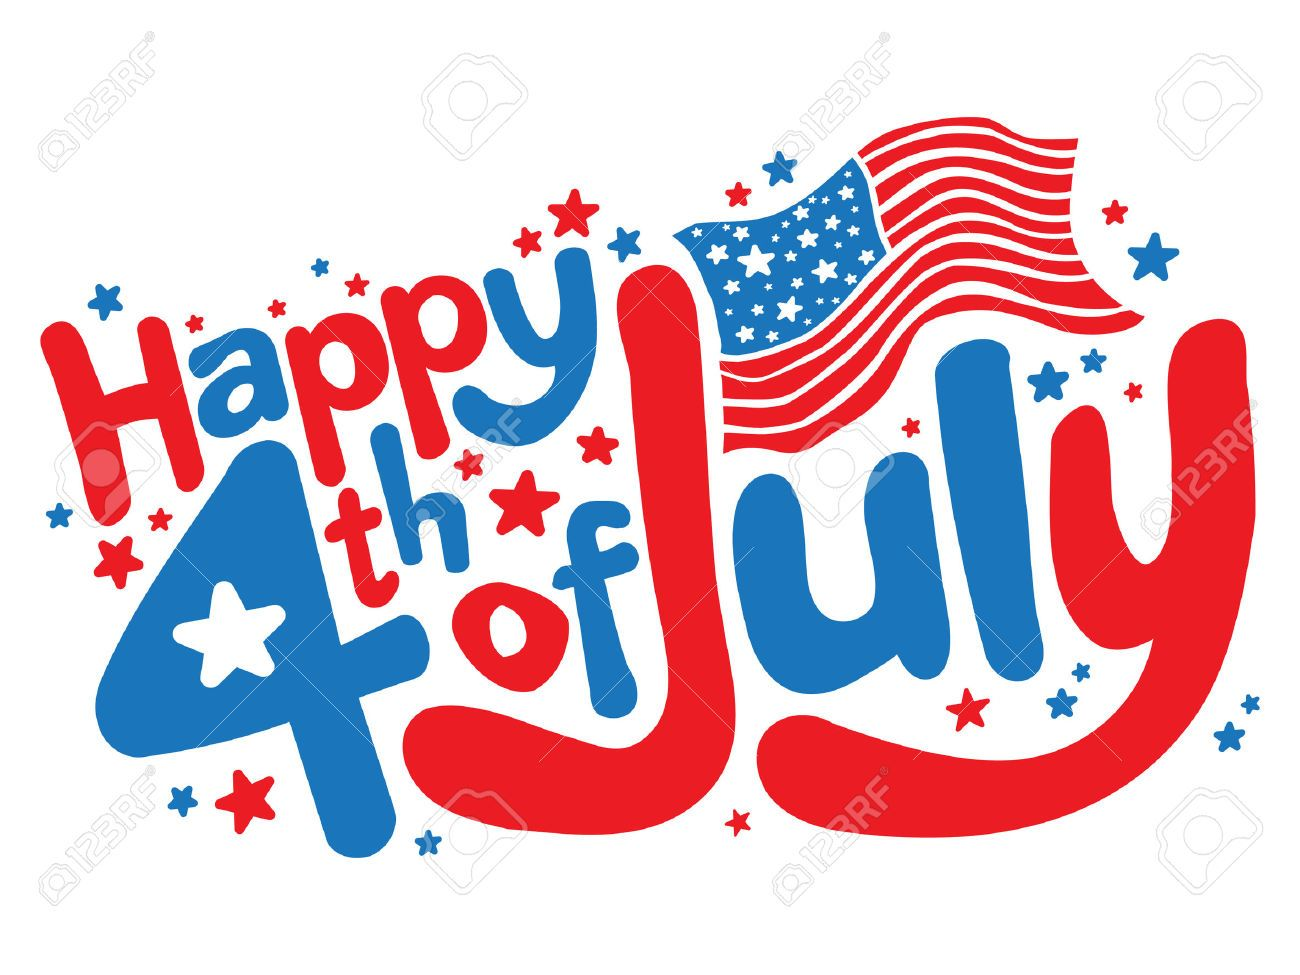 Happy 4th Of July Fun Text Vector Graphic Royalty Free Cliparts 4th Of July Images Happy Fourth Of July 4th Of July Clipart